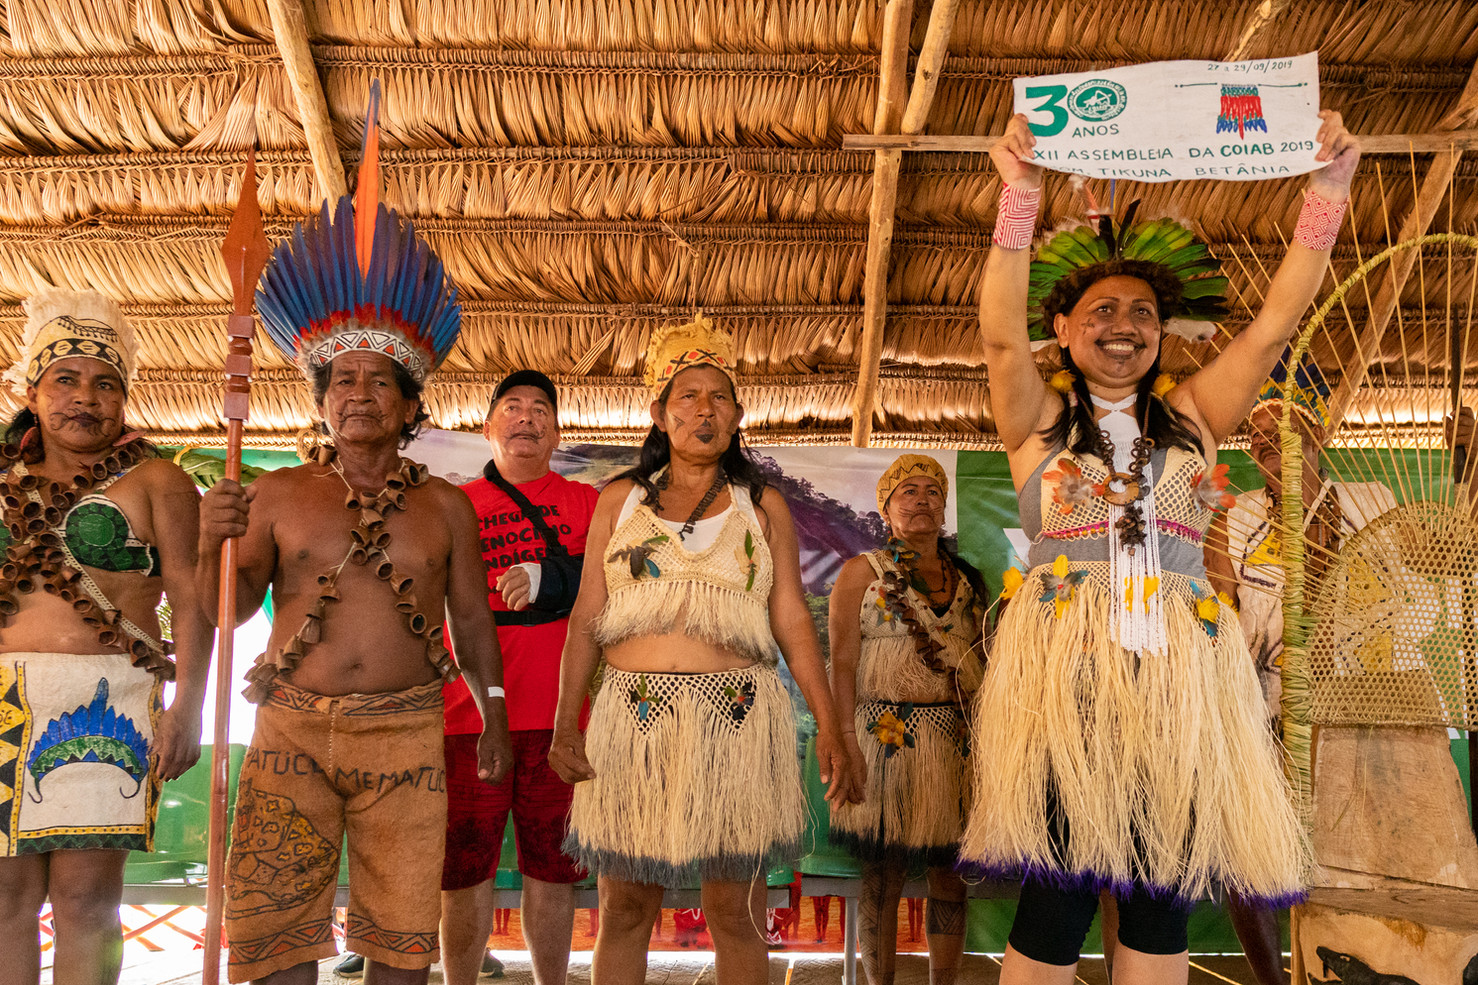 COIAB coordinator Nara Baré, alongside indigenous leaders from the local community during the opening ceremony of the 12th Ordinary Assembly of COIAB (Coordination of Indigenous Organizations of the Brazilian Amazon) marking the organization's 30th anniversary in Santo Antonio do Iça, Amazonas state, Brazil, September 2019. Around 300 indigenous leaders gathered to reaffirm the 519 years of resistance in the struggle to ensure and strengthen the rights to their territories and the right to preserve their cultures. This event takes place every two years.